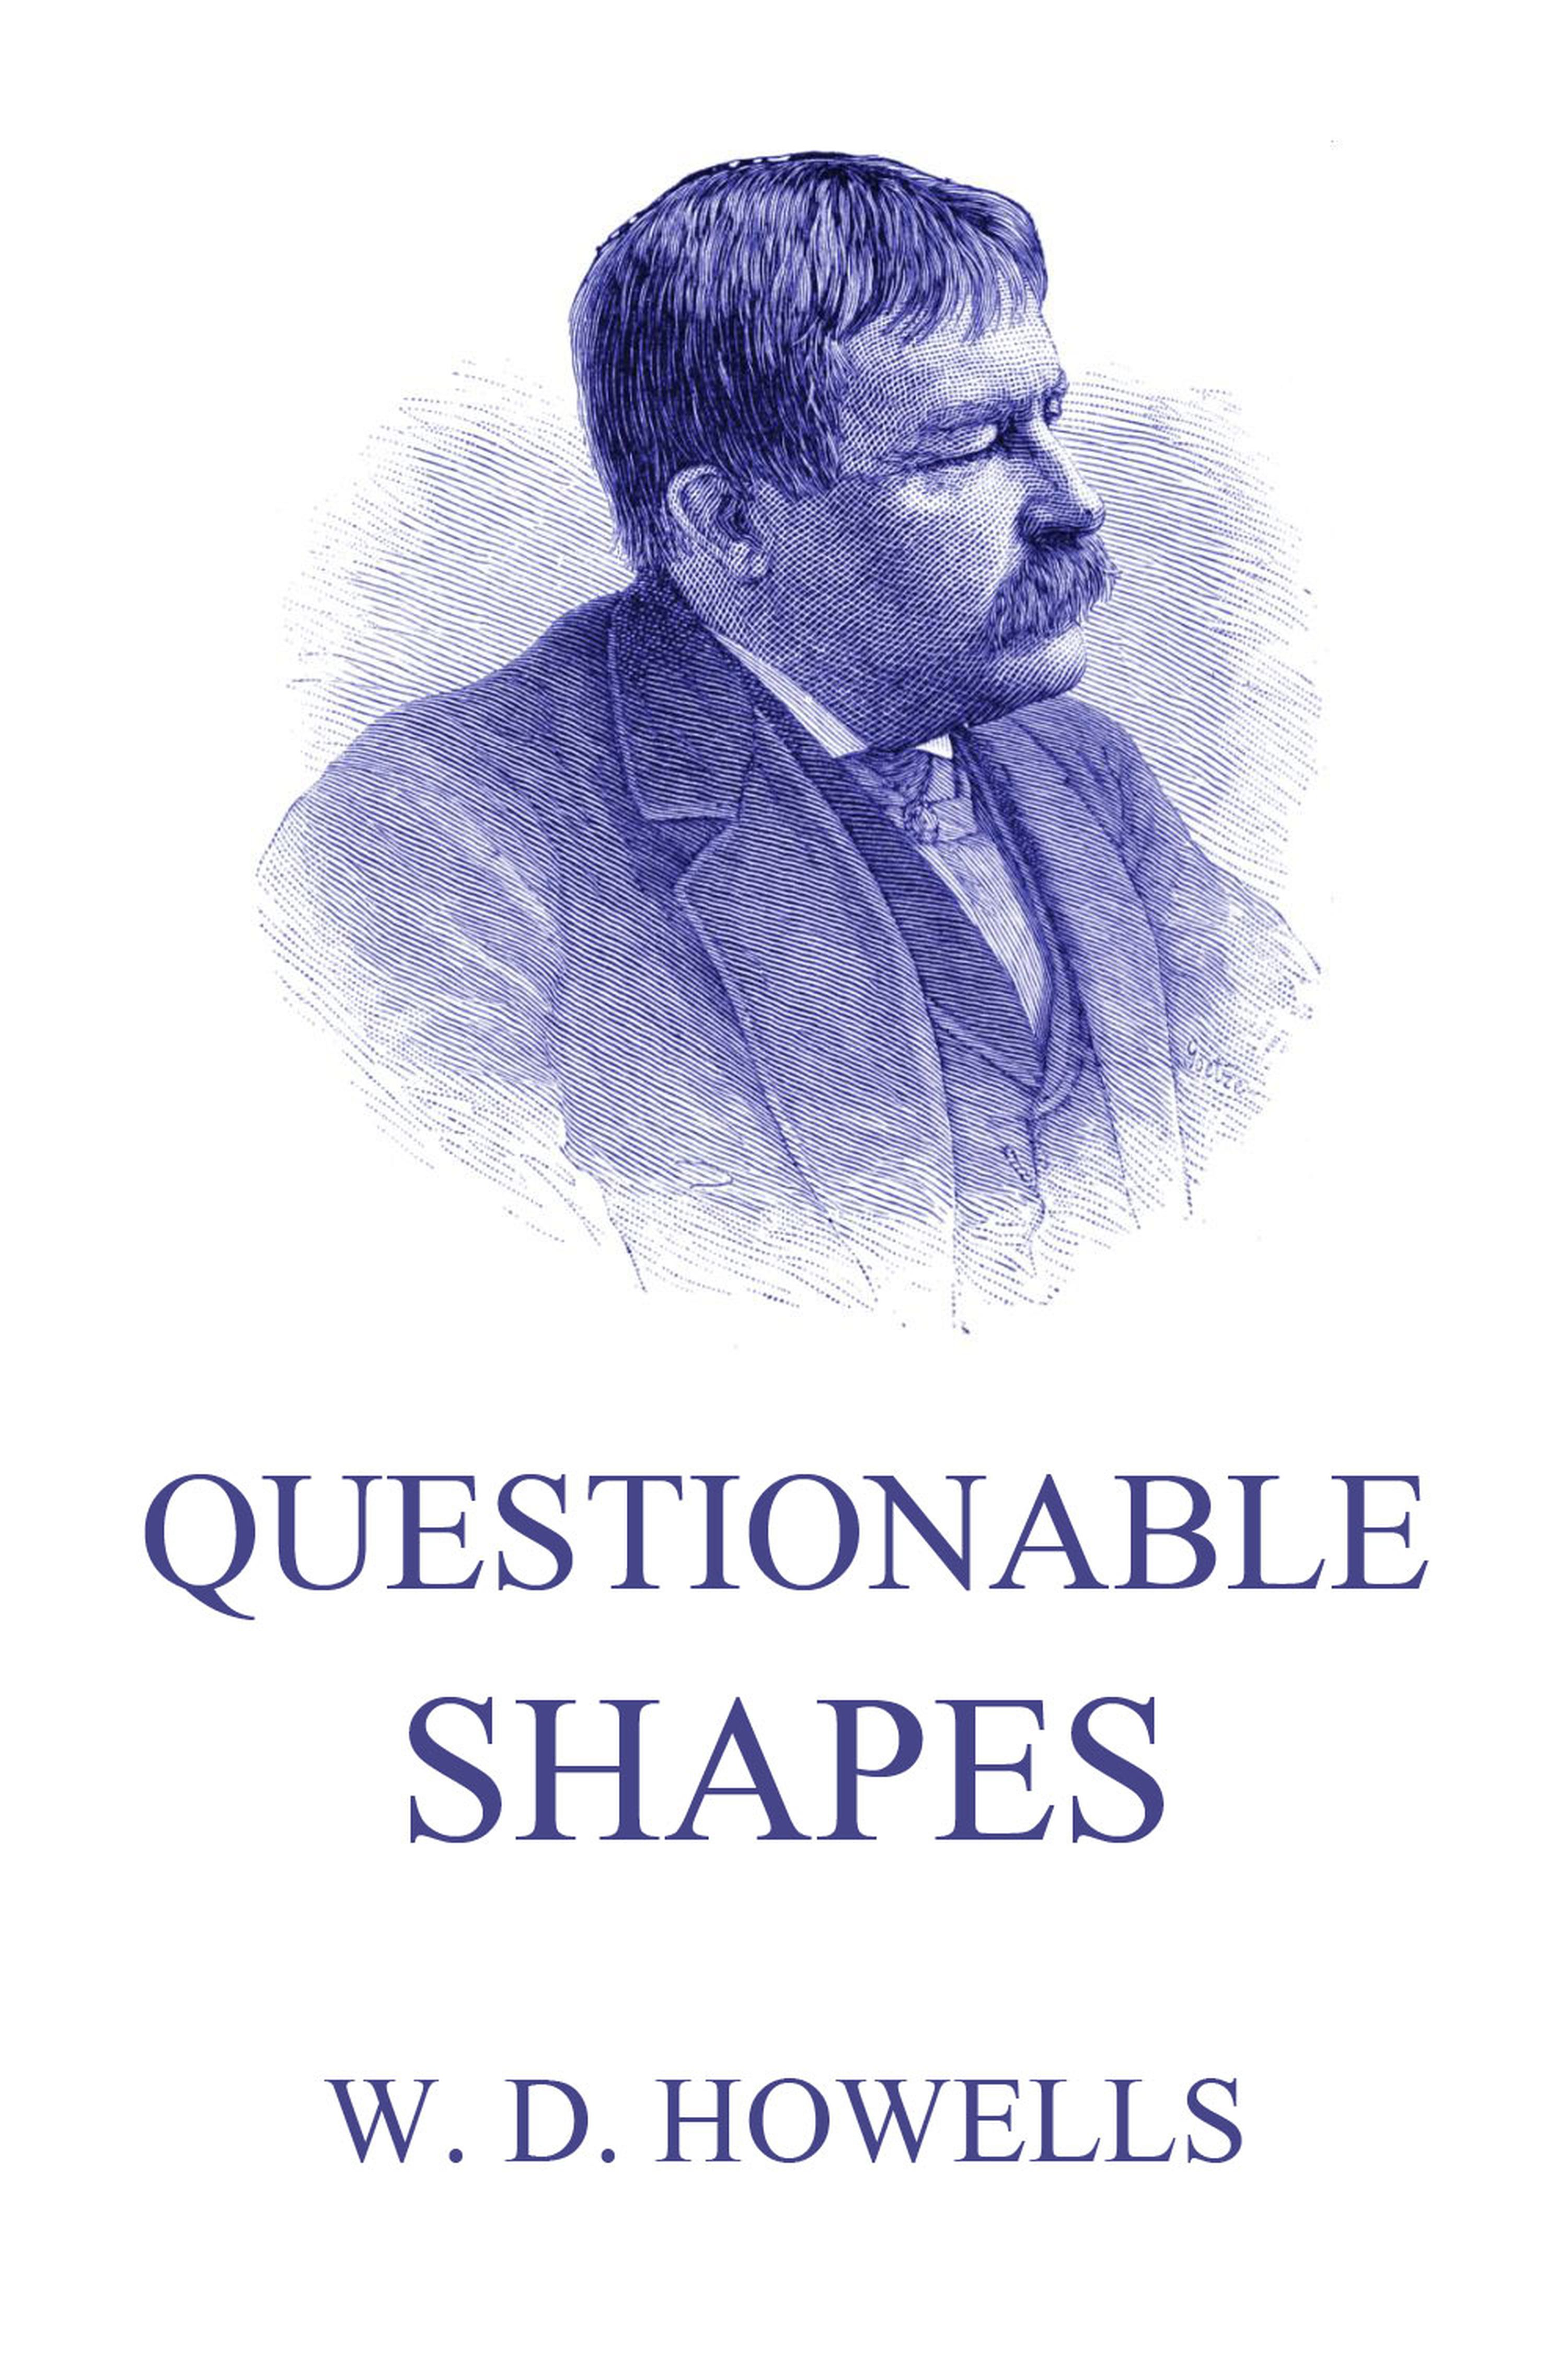 William Dean Howells Questionable Shapes